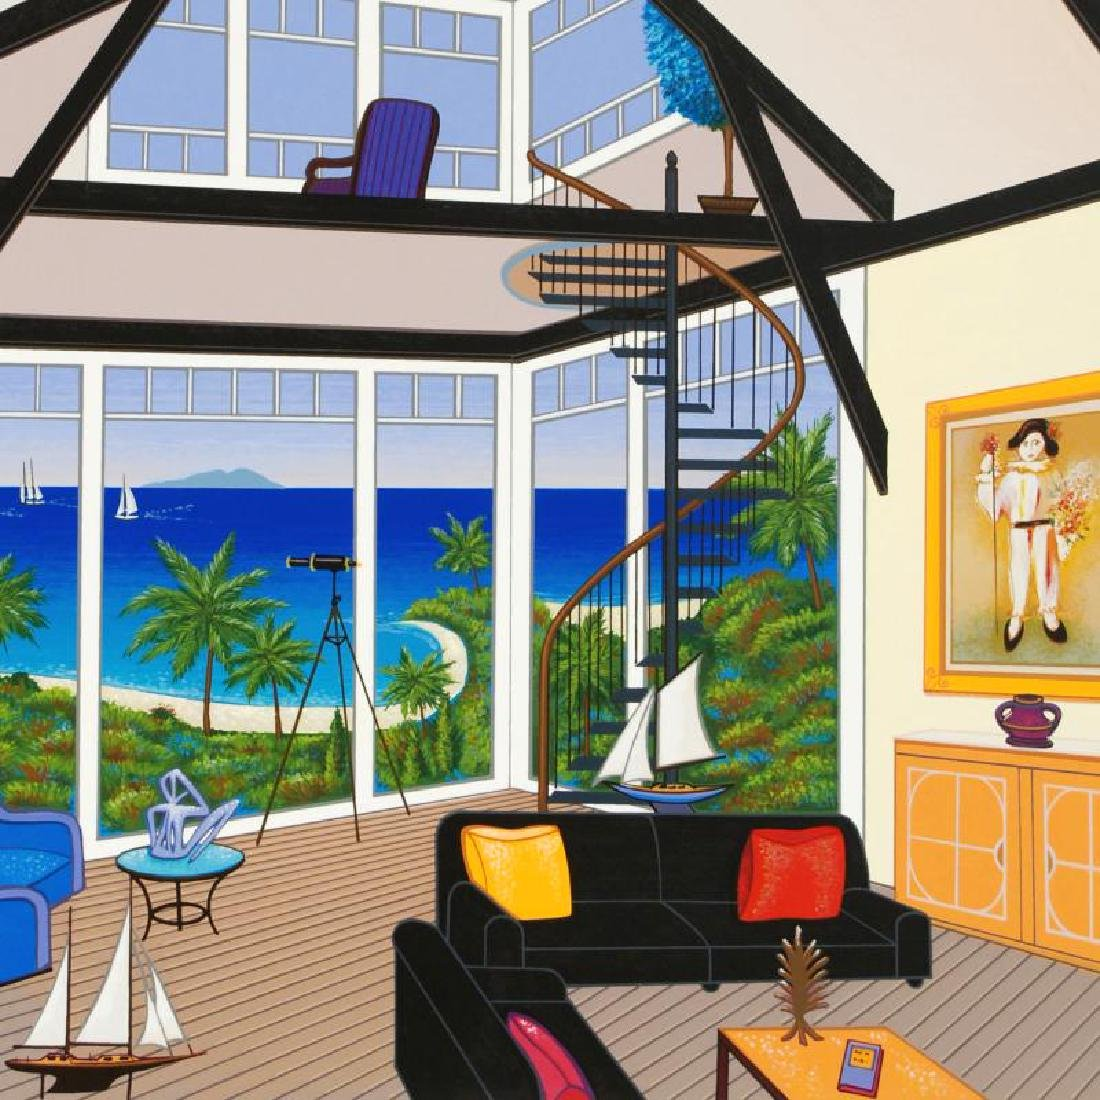 Duplex Over Stinson Limited Edition Serigraph by Fanch - 3